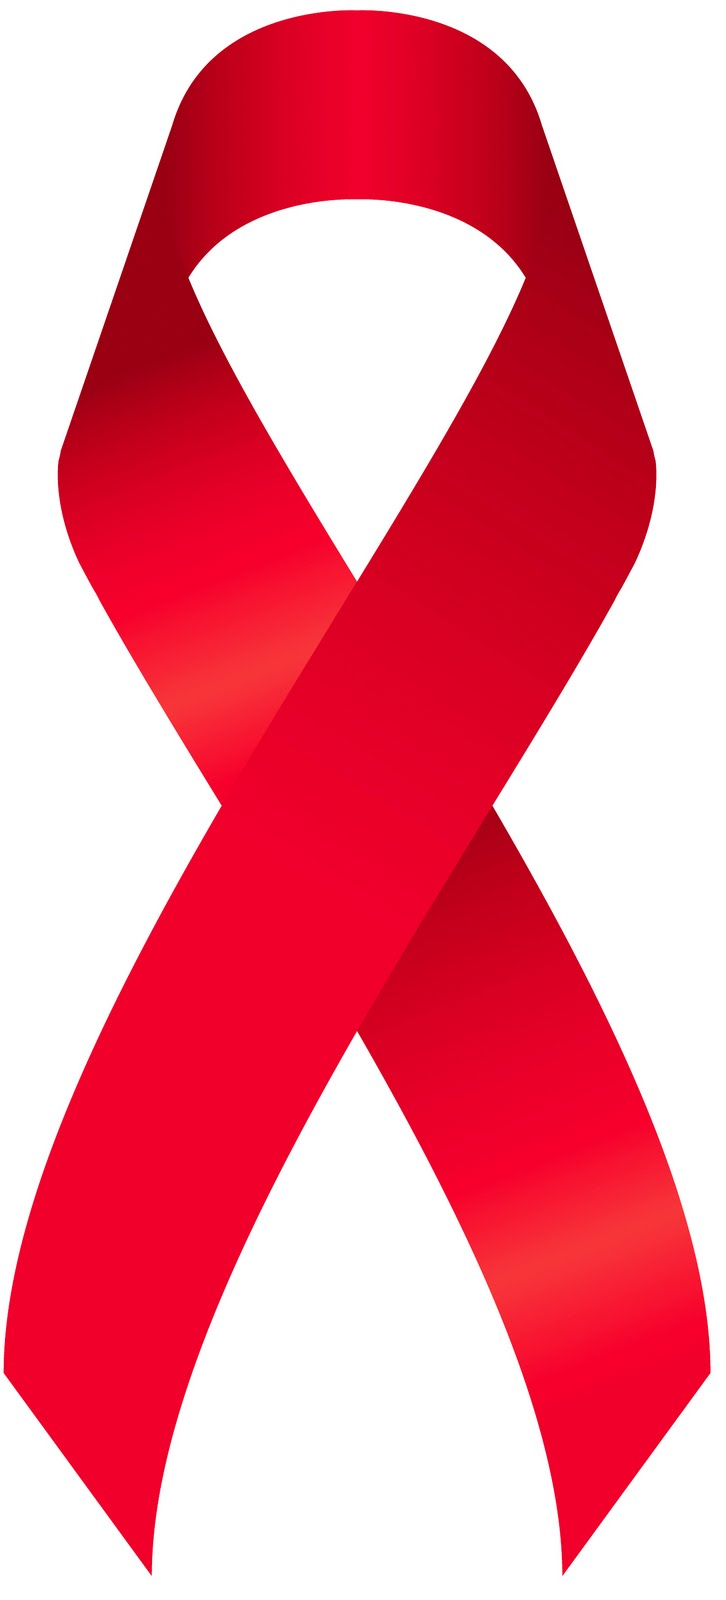 726x1600 Red Aids Ribbon Clip Art